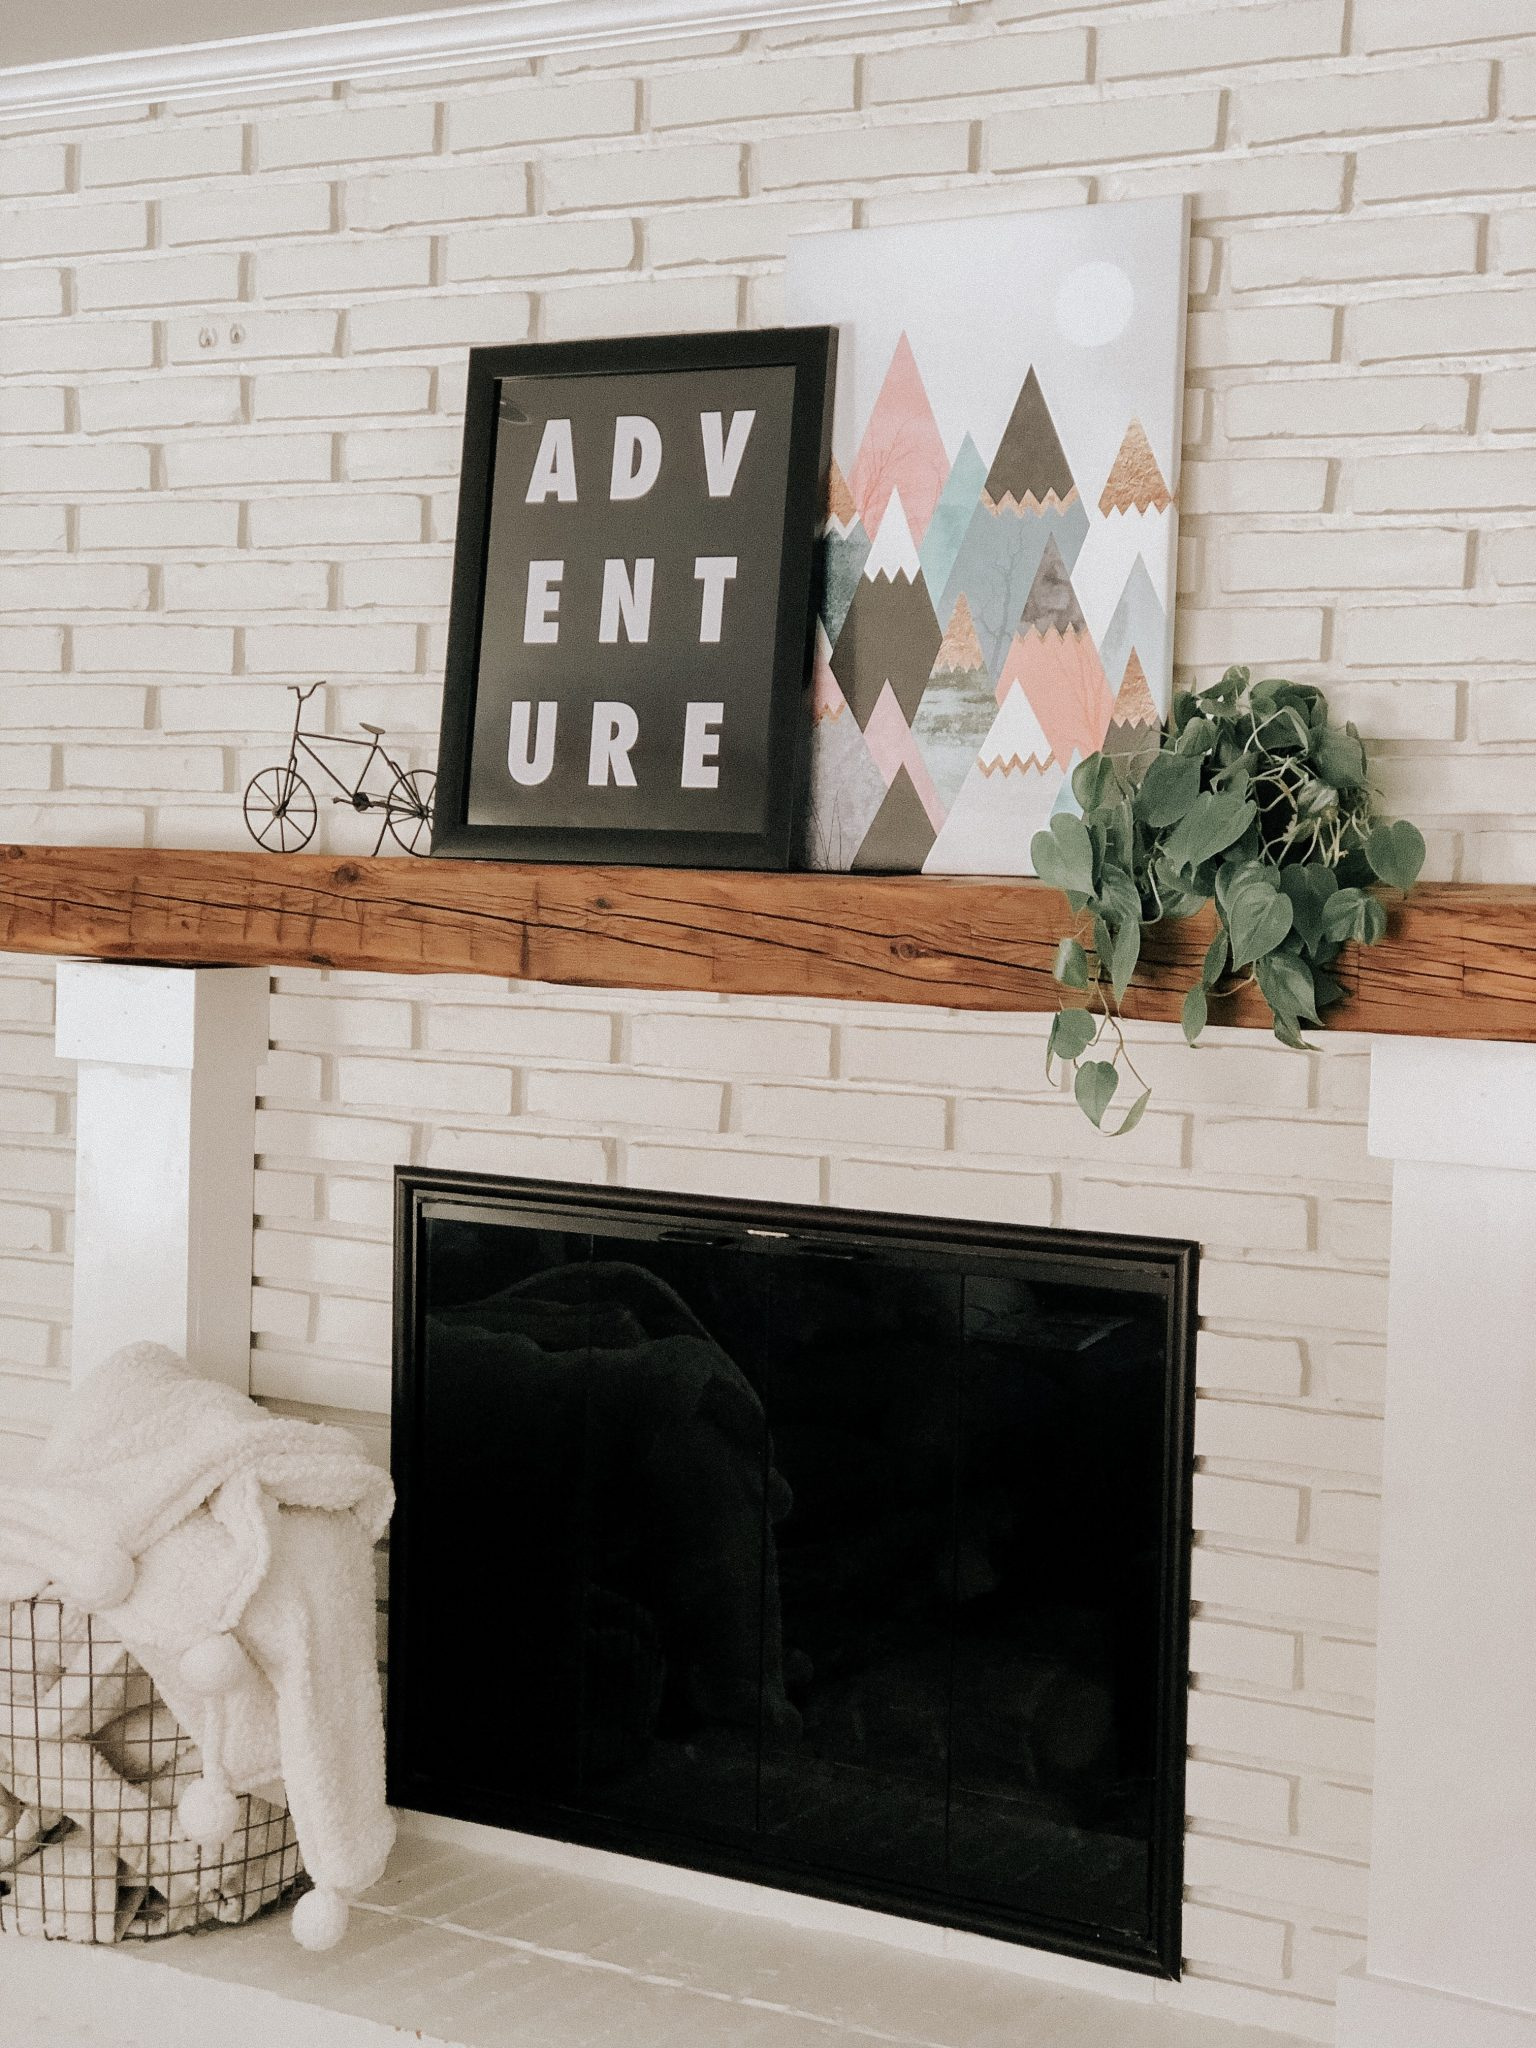 Target Decor Finds | Daily Splendor Life and Style Blog | home decor, mantle decor, fixer upper style #farmhousestyle #farmhousedecor #homeinspo #targetstyle #targetfinds #homestyle